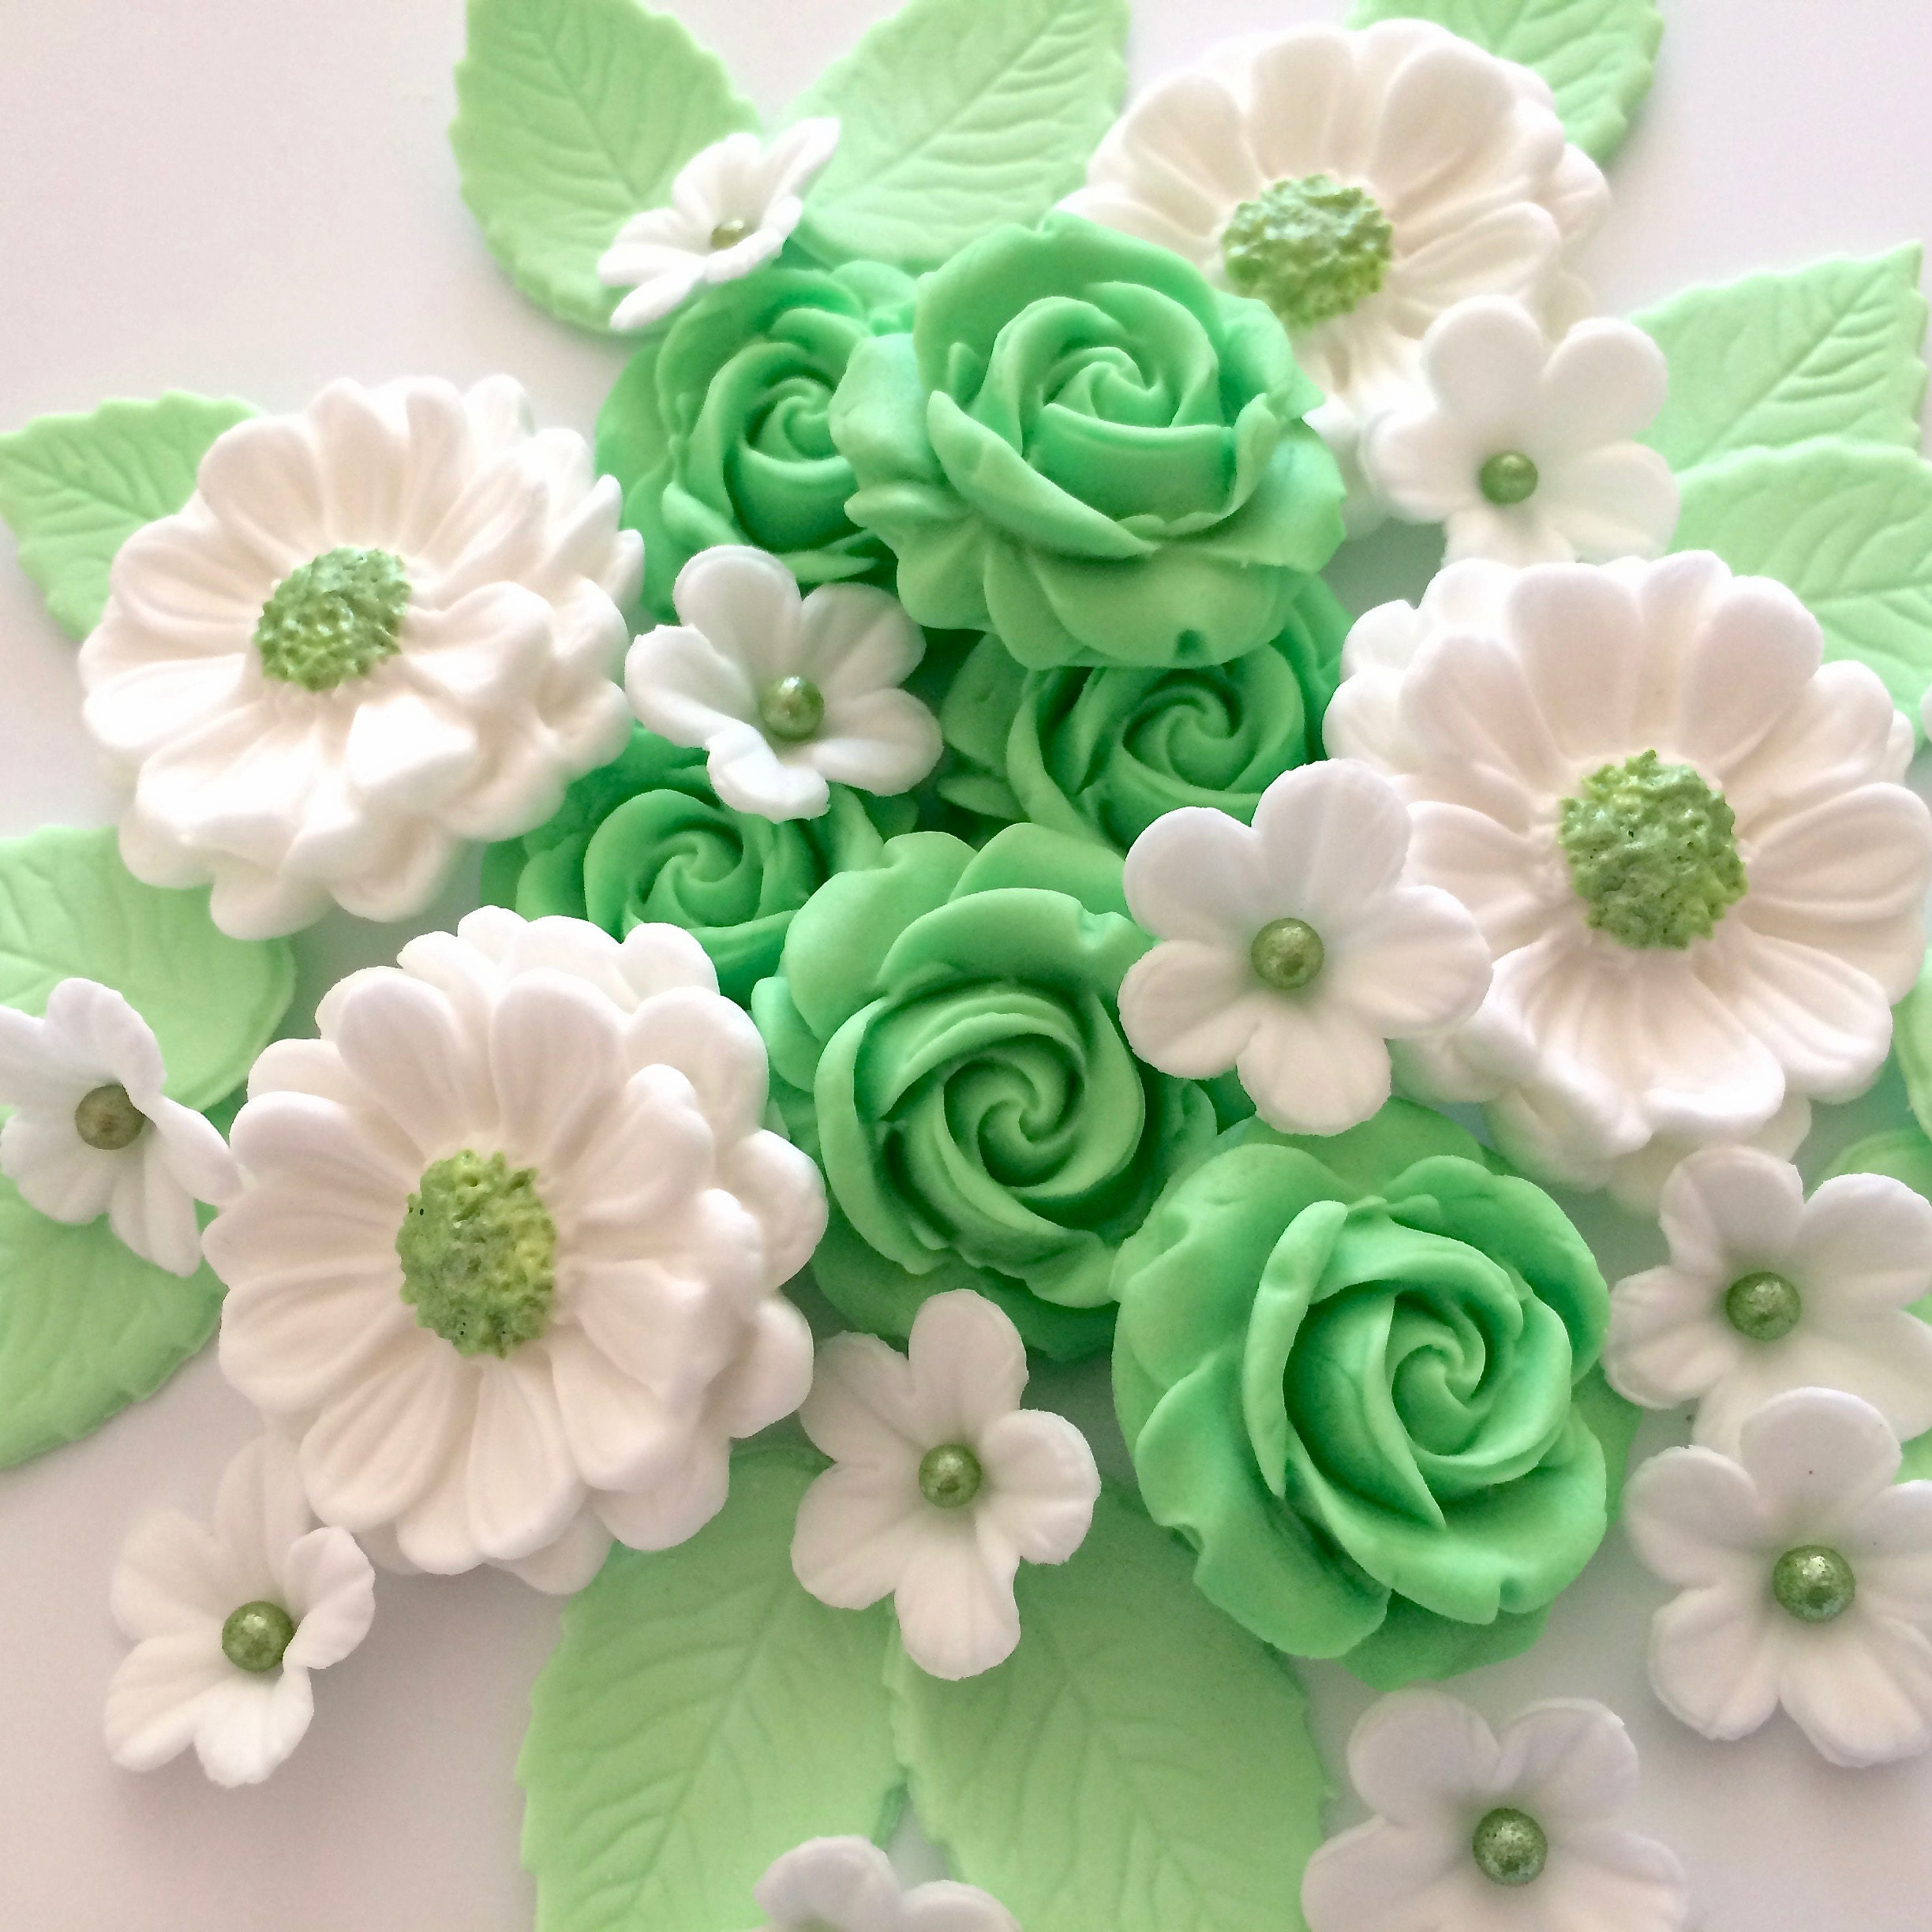 Mint Green Rose Bouquet Edible Sugar Flowers Cake Decorations Etsy